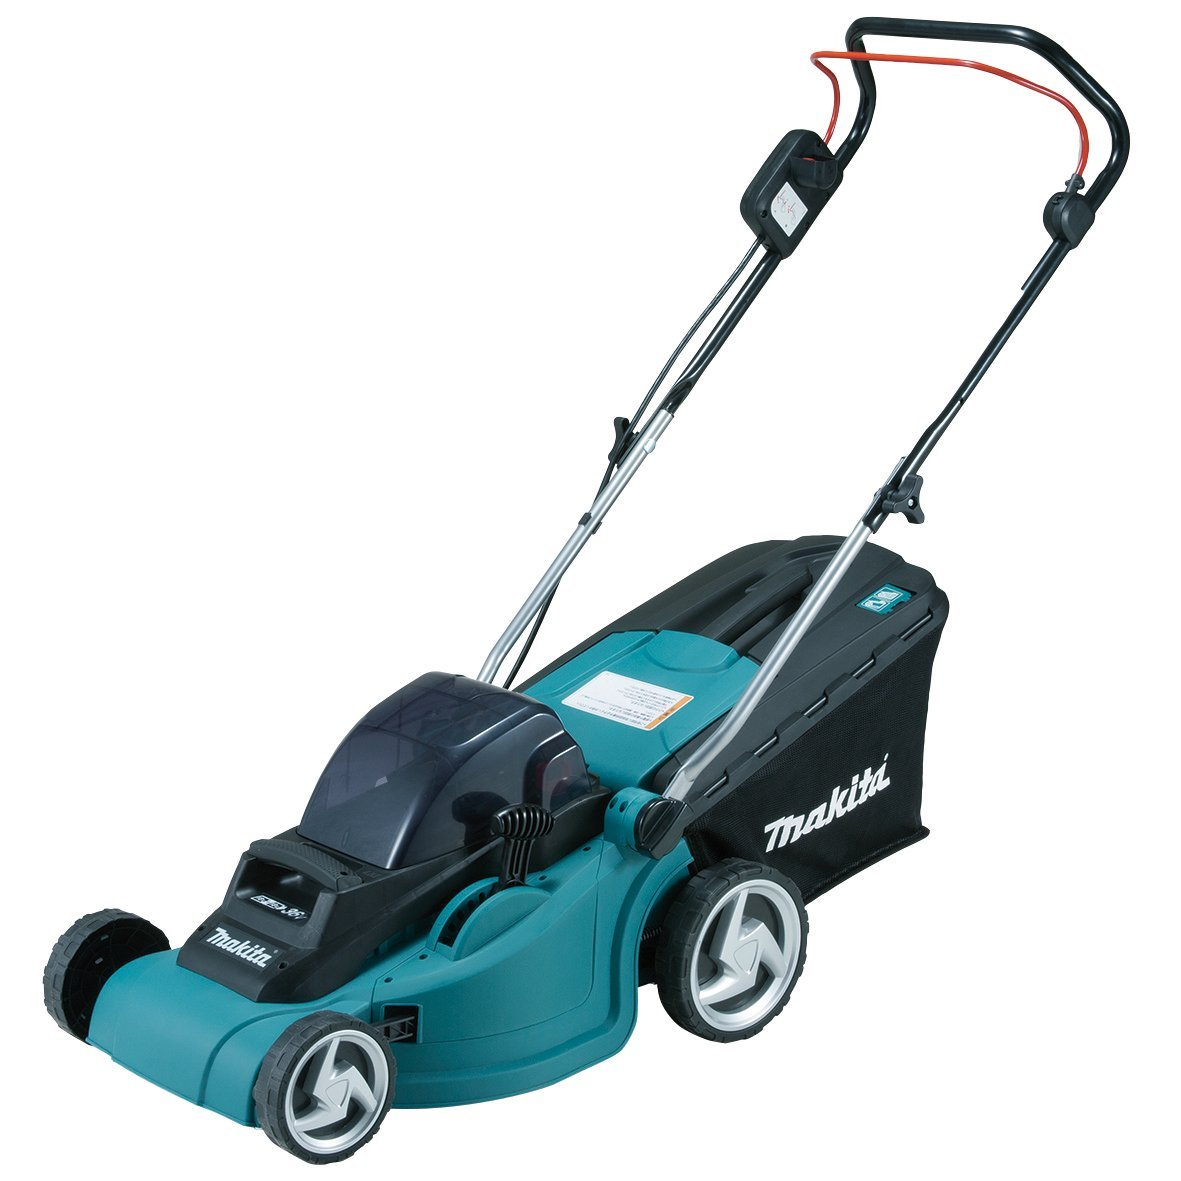 Makita gardening tools powertool world for The works garden tools